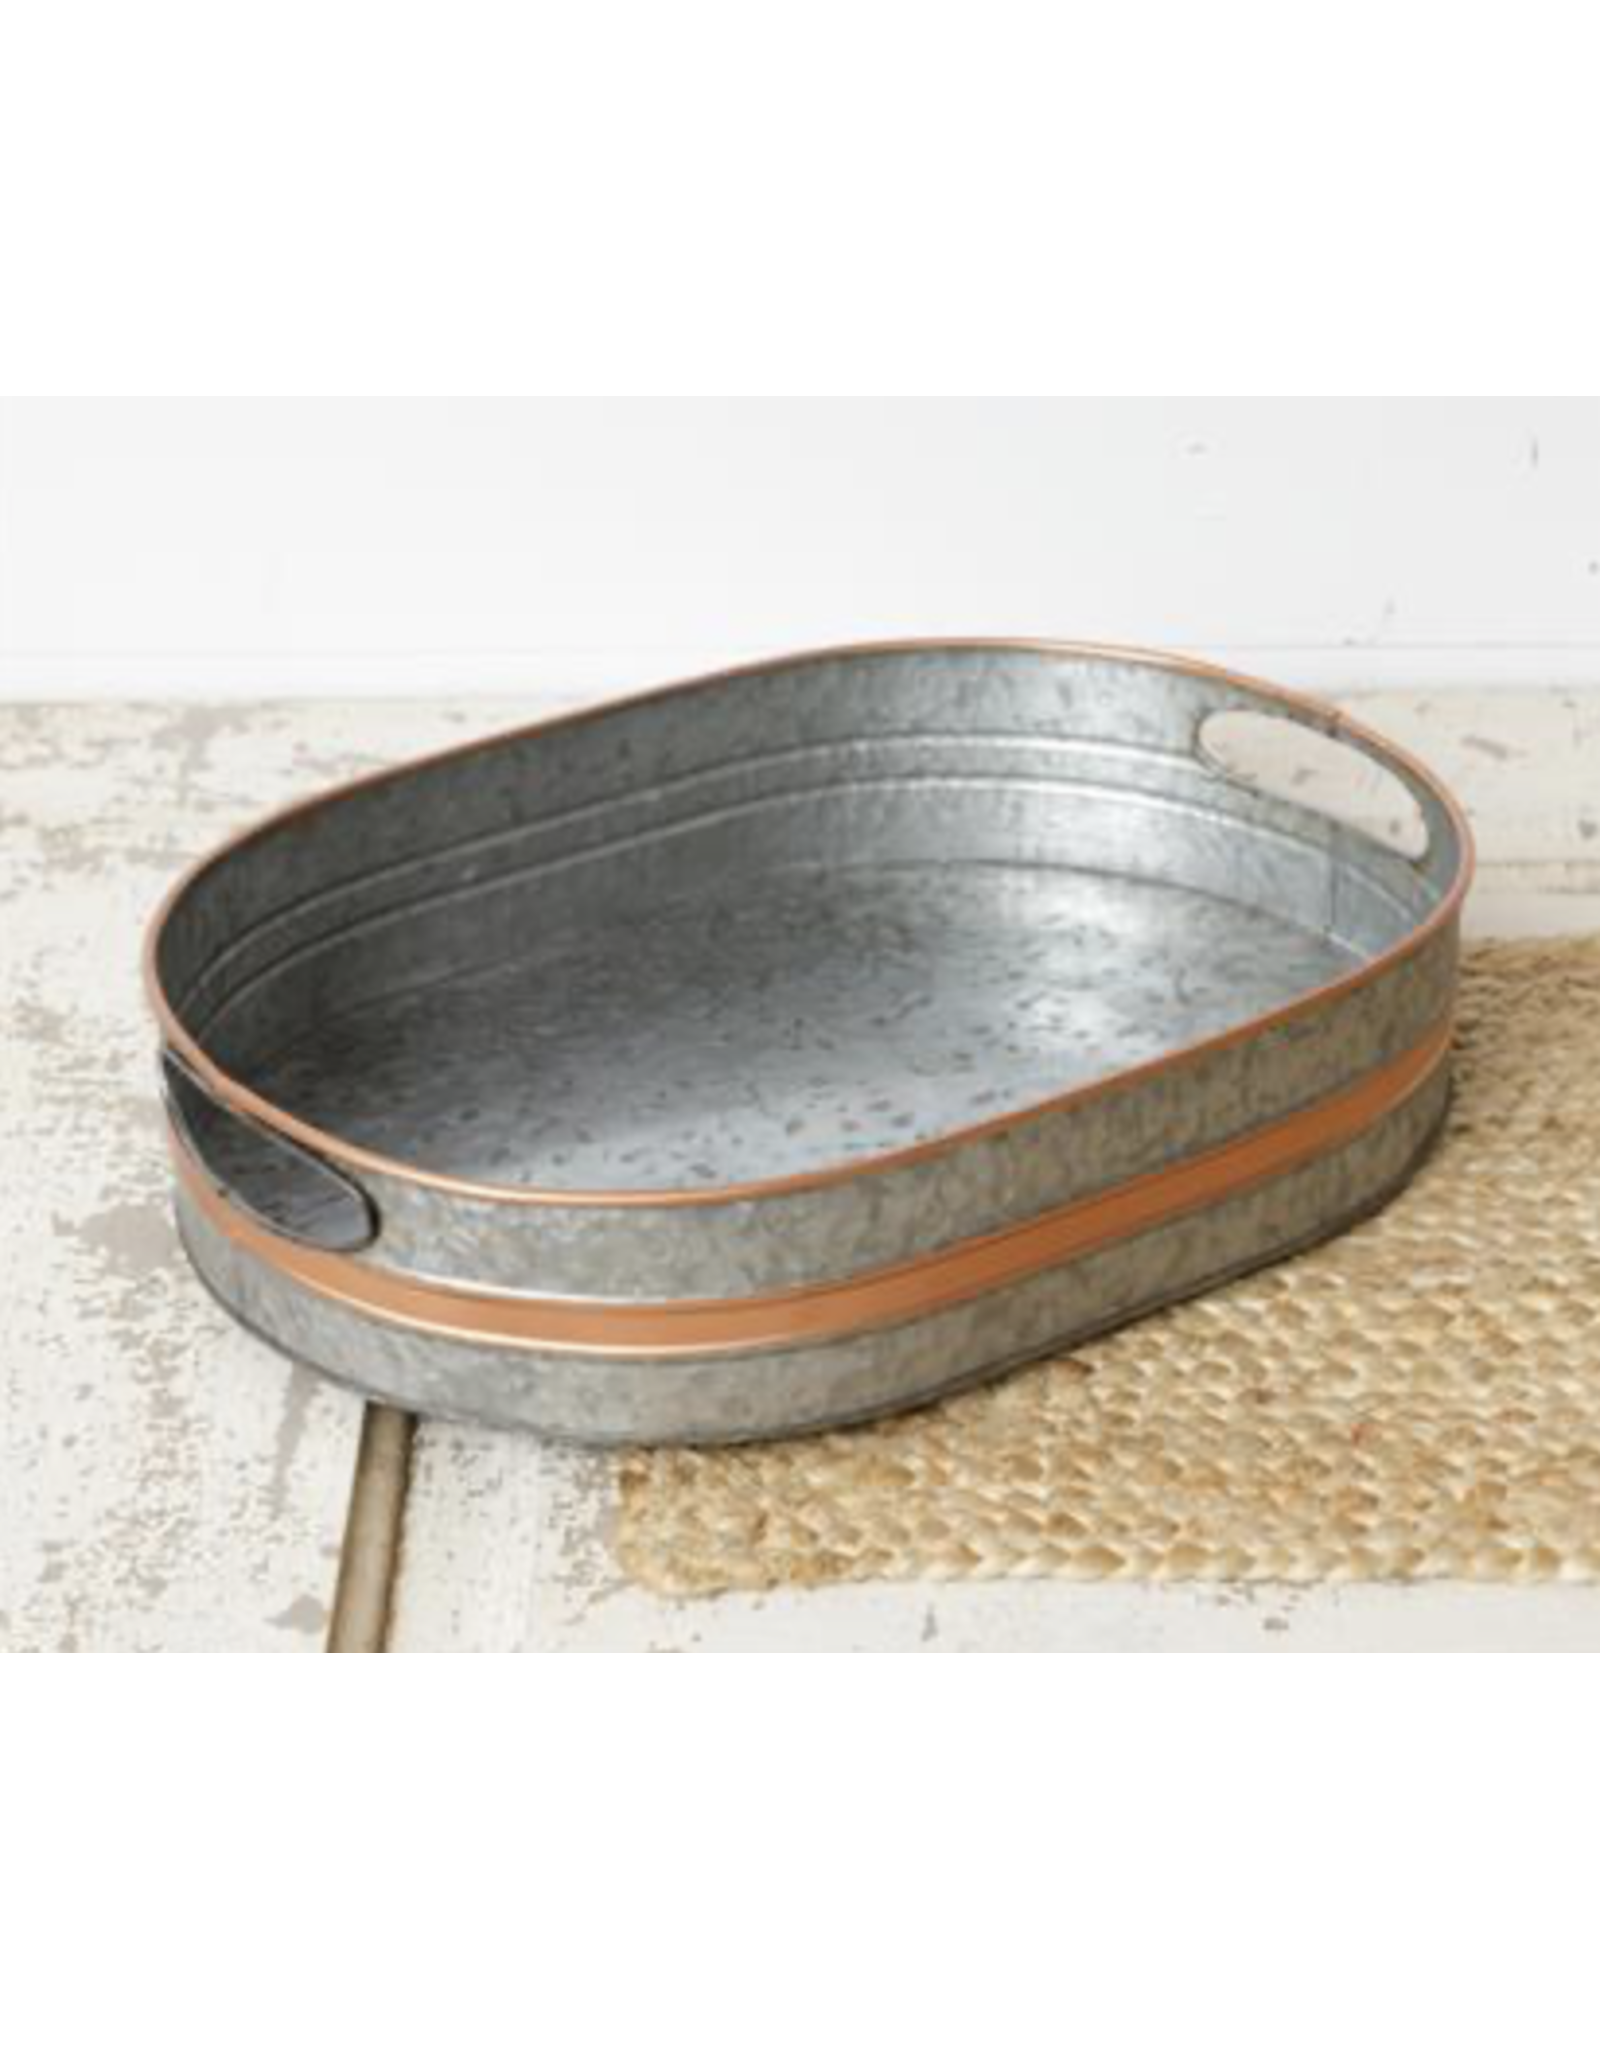 Audrey's Galvanized Tray with Copper